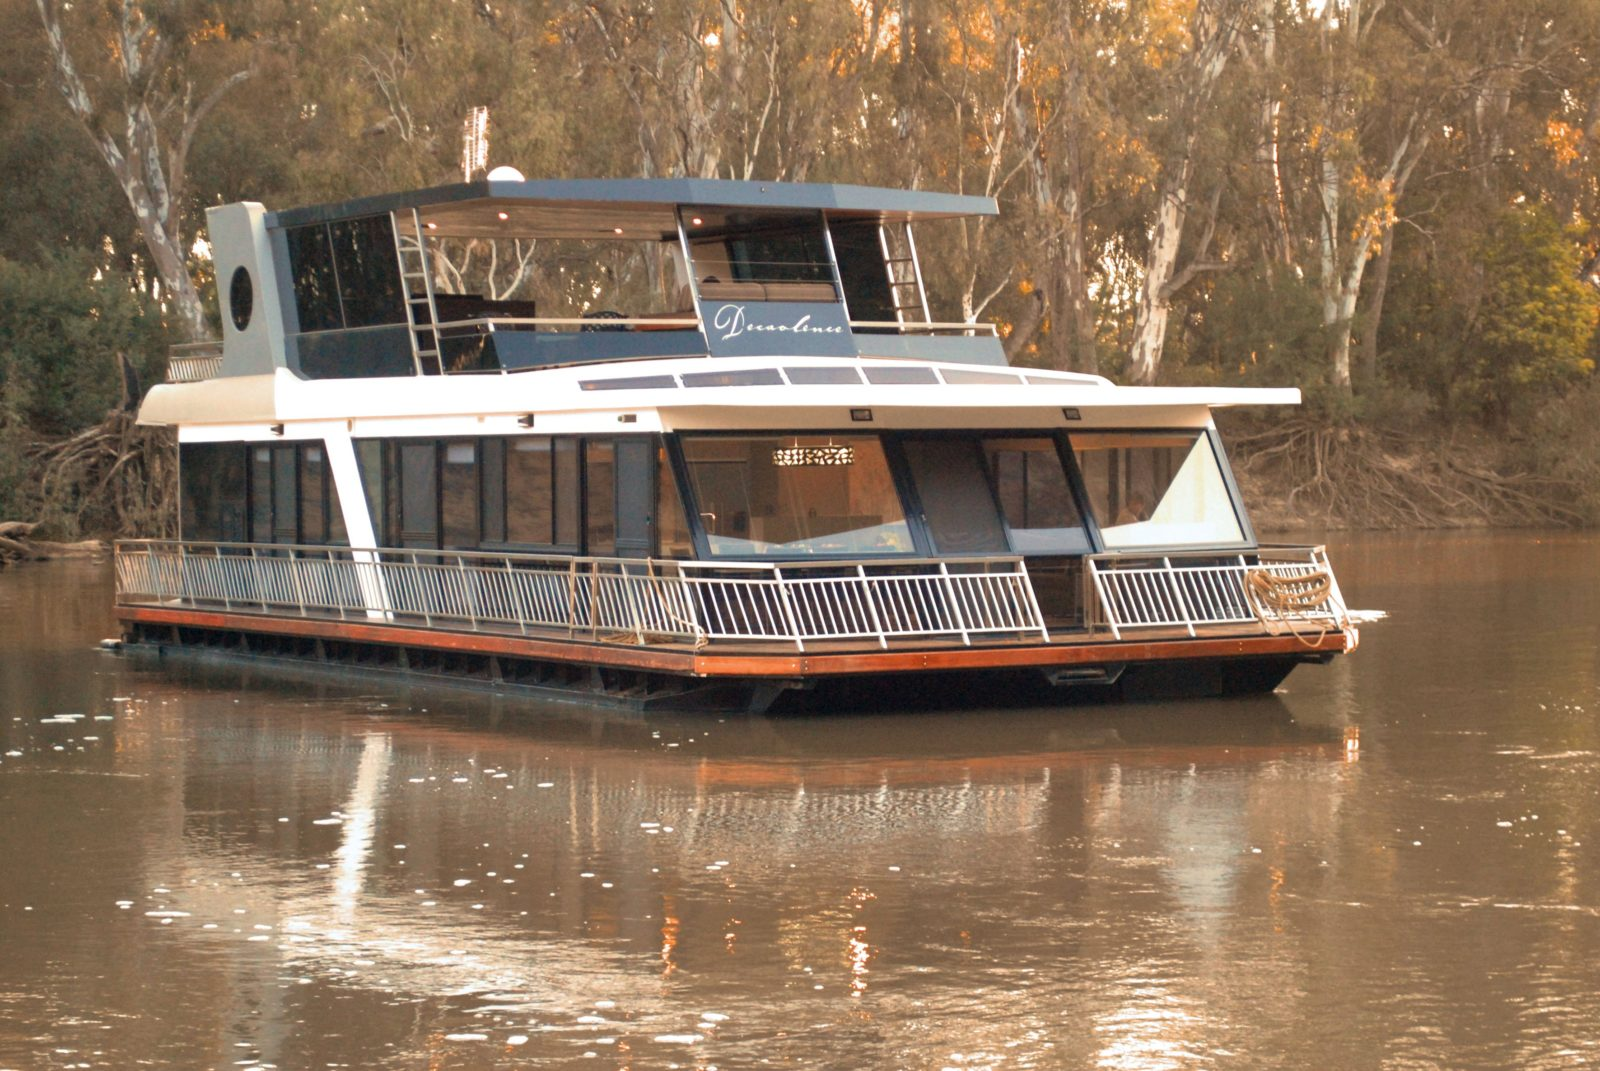 Decadence cruising down the might Murray